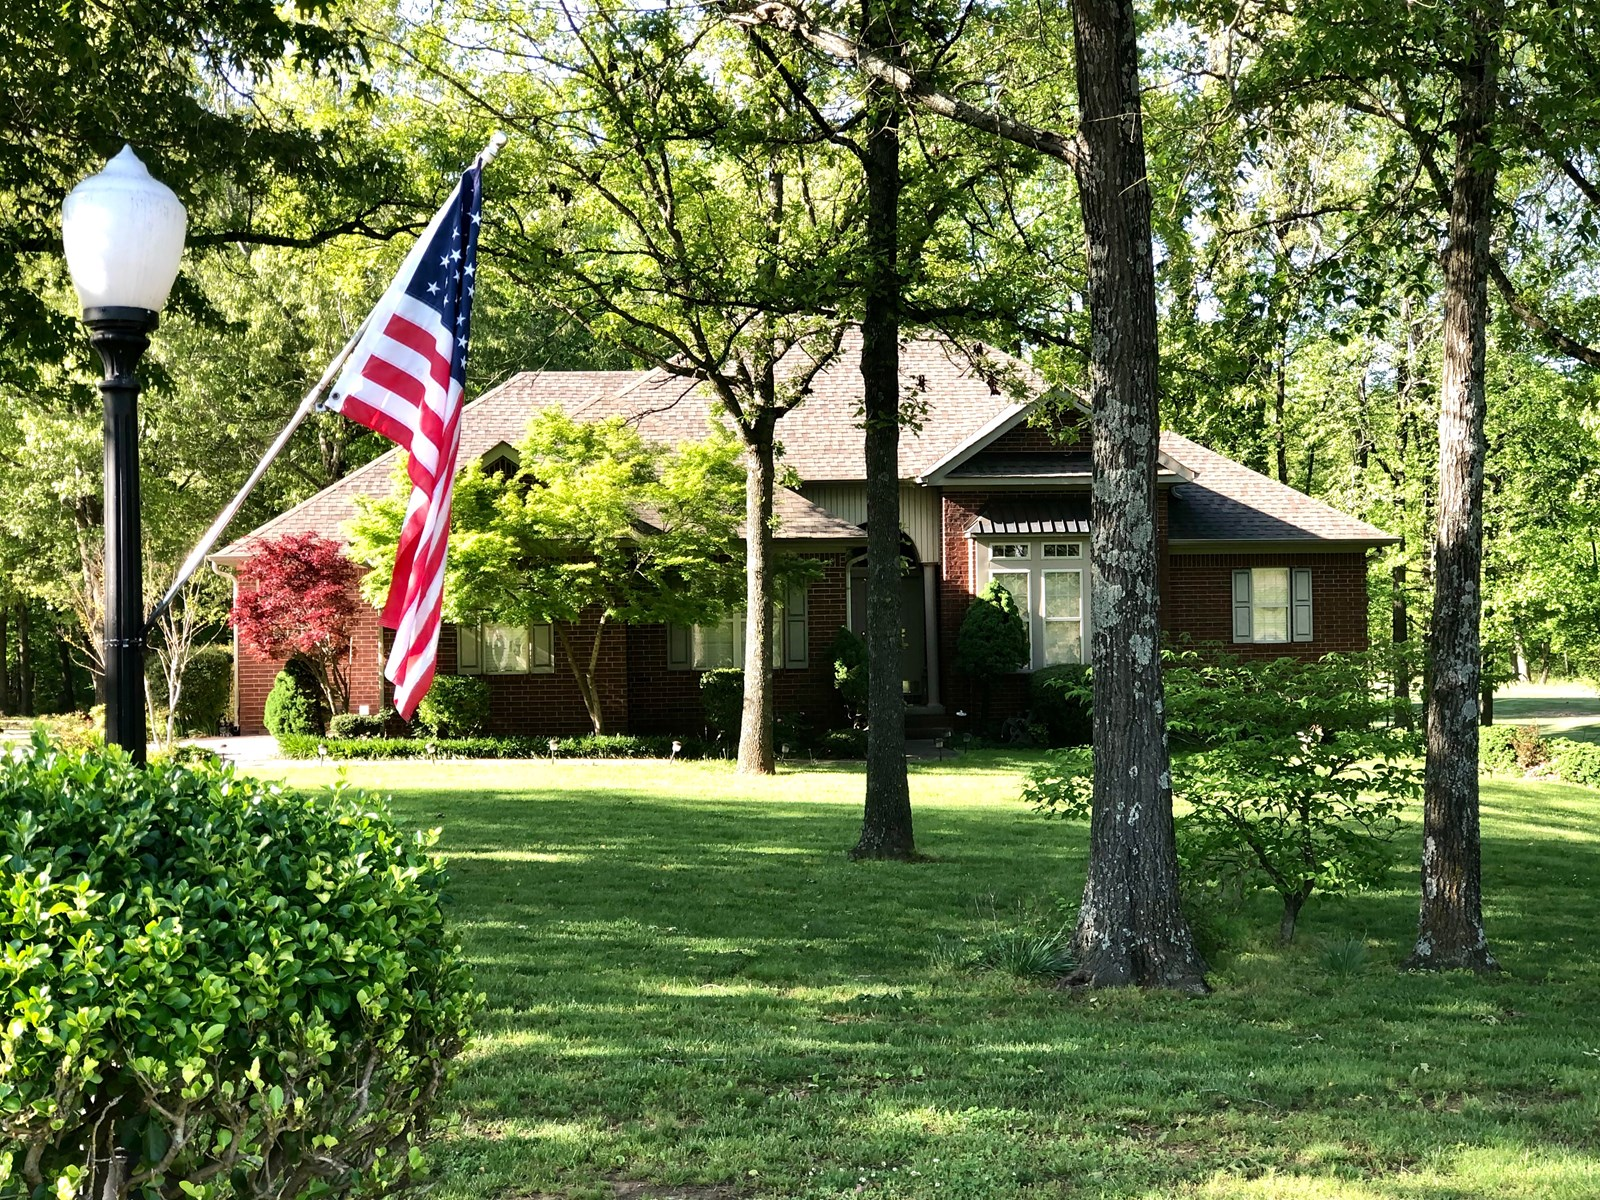 ELEGANT HOME AND GOLF COURSE PROPERTY FOR SALE!